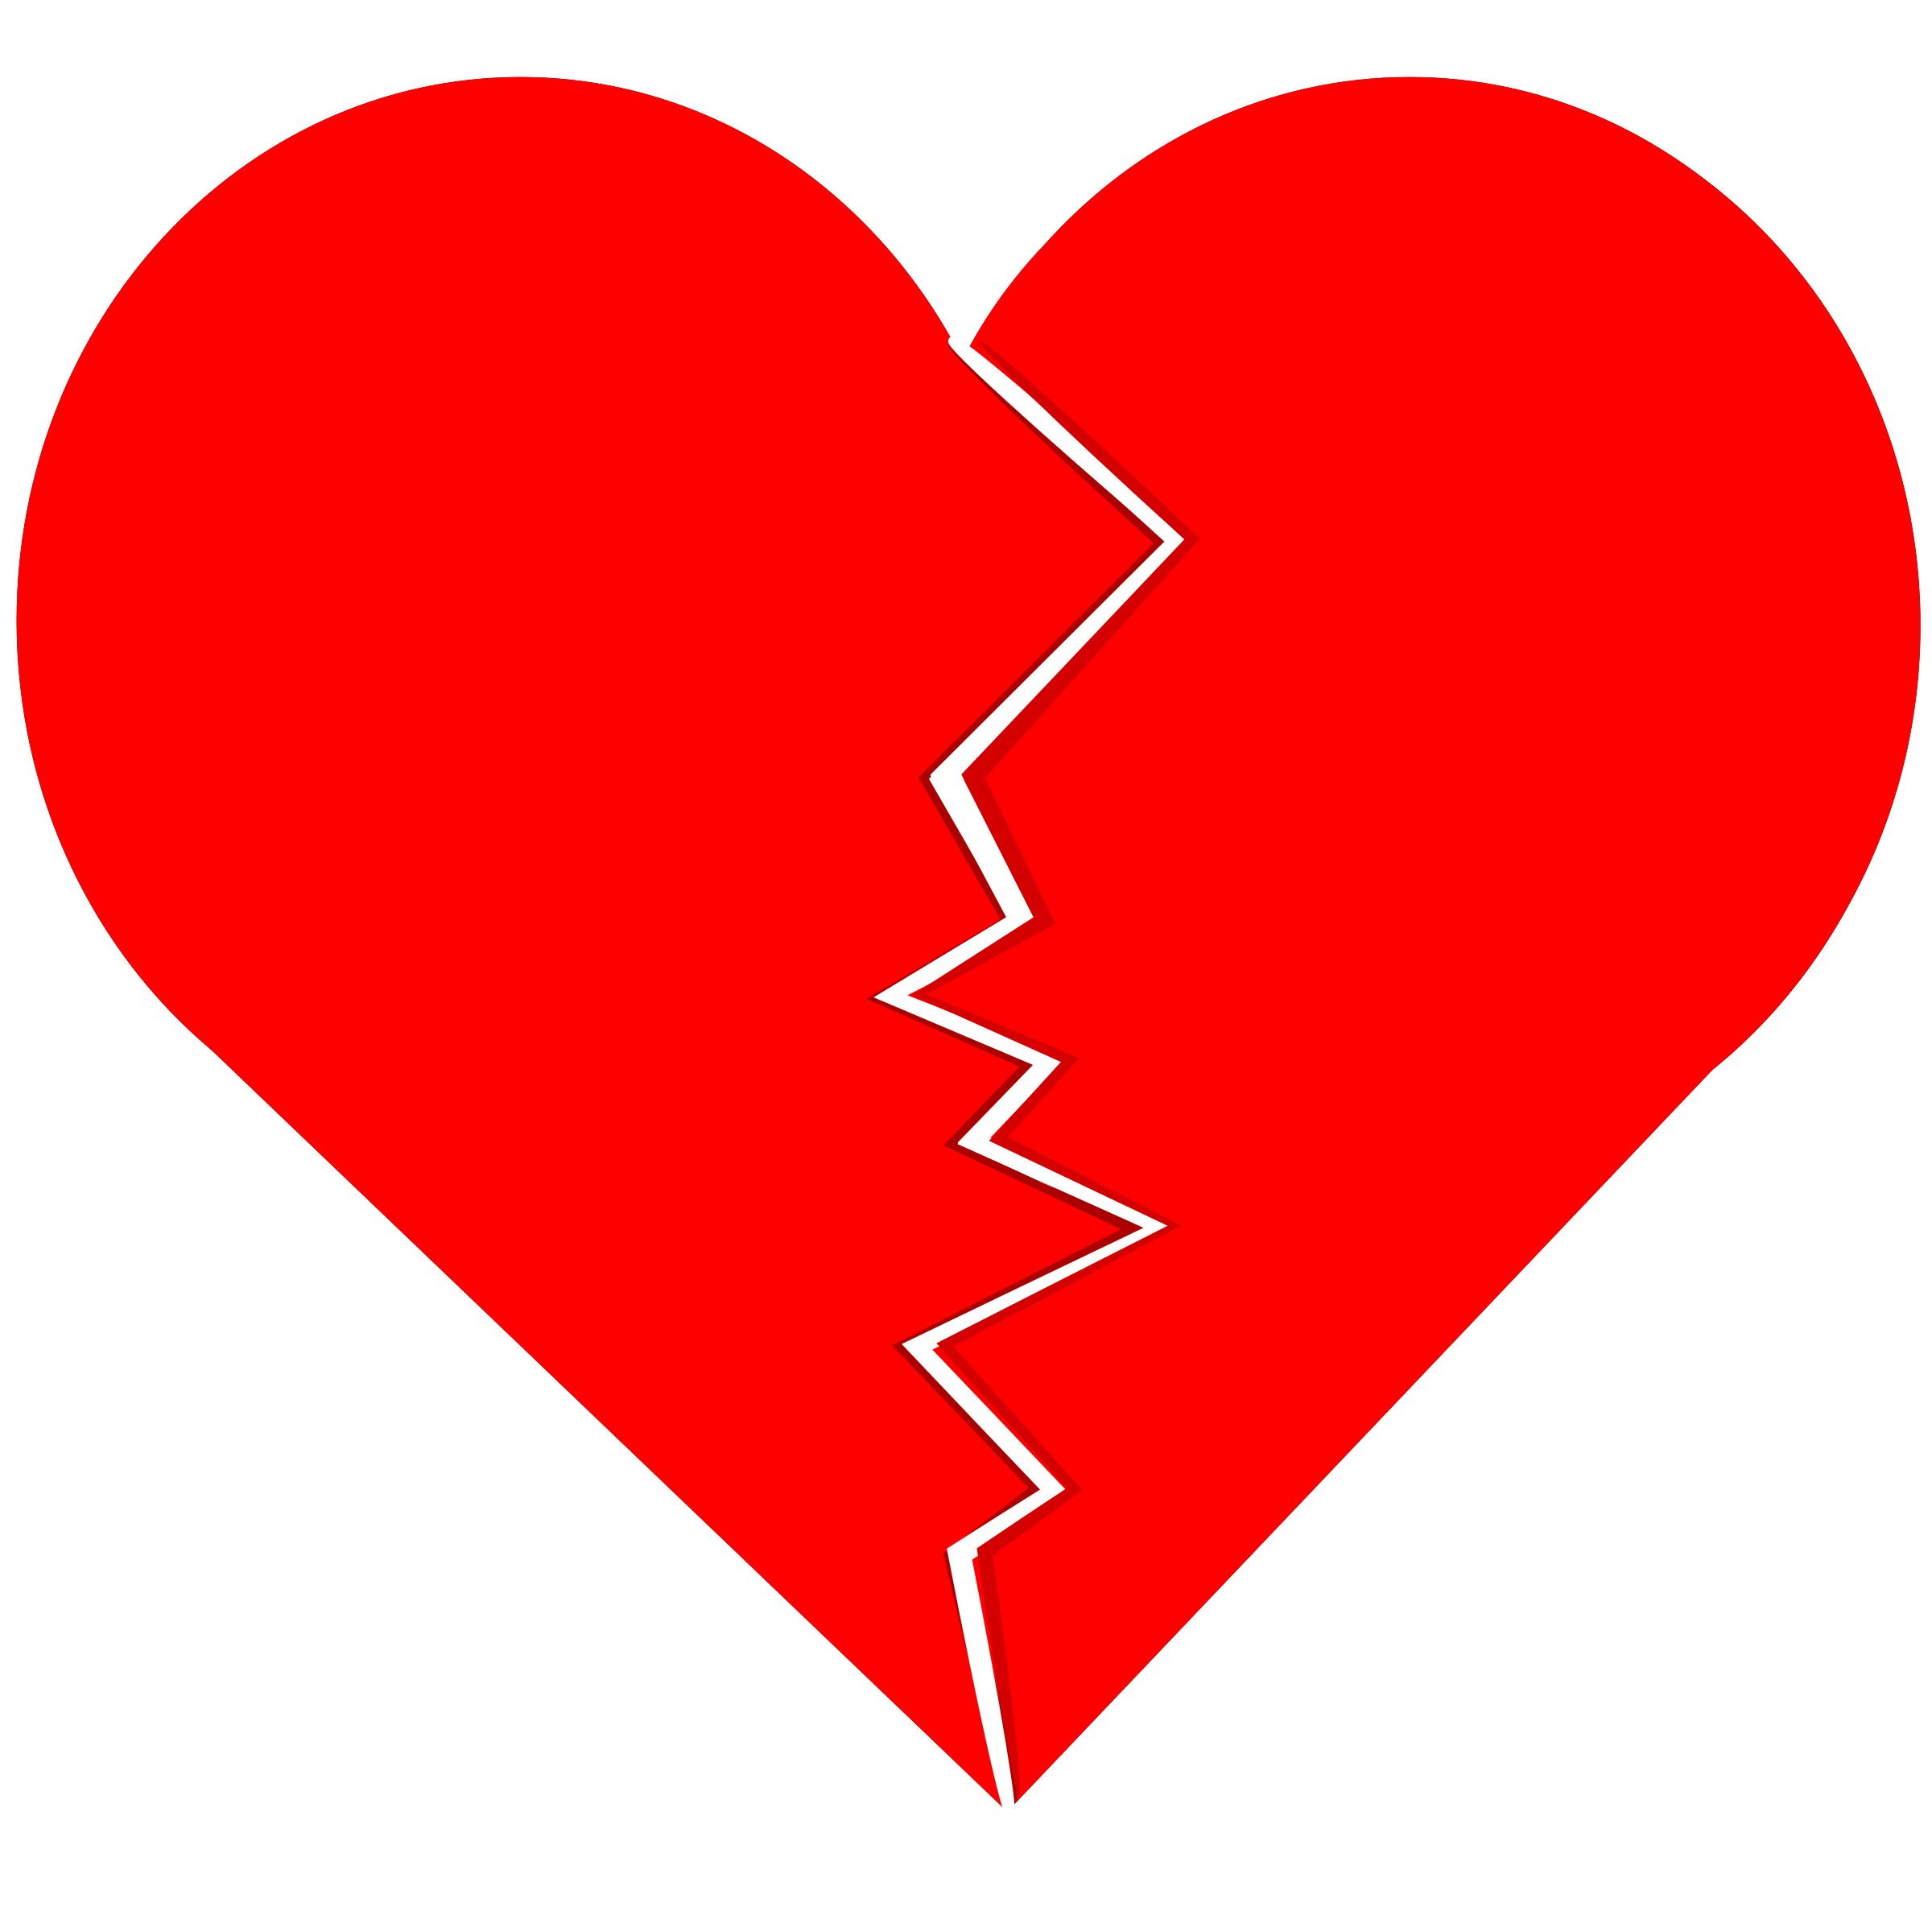 Cracked and Broken heart vector clipart image.